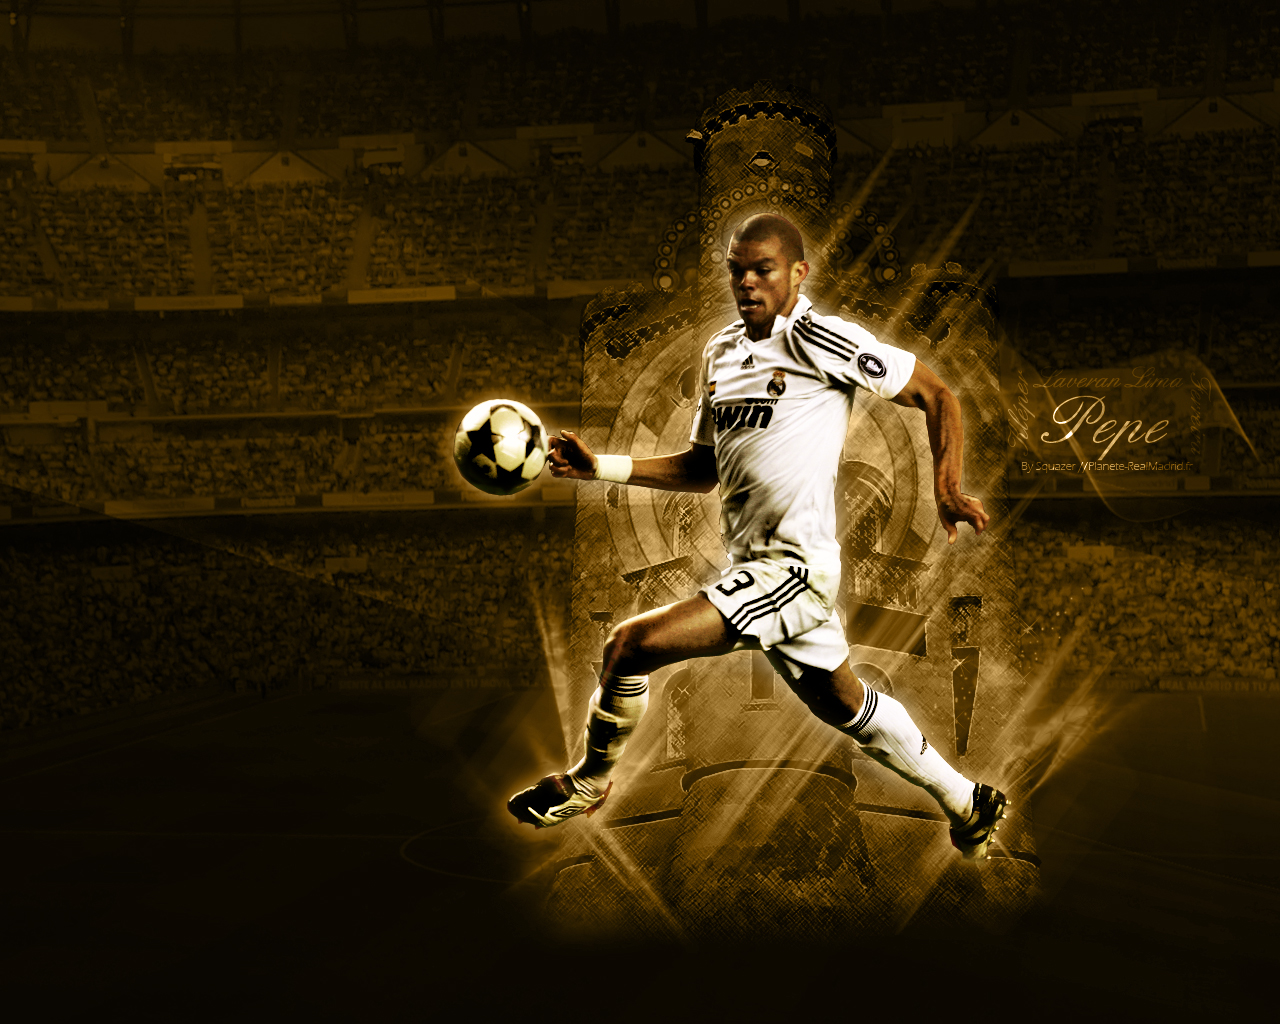 pepe real madrid wallpaper 2014 Desktop Backgrounds for HD 1280x1024